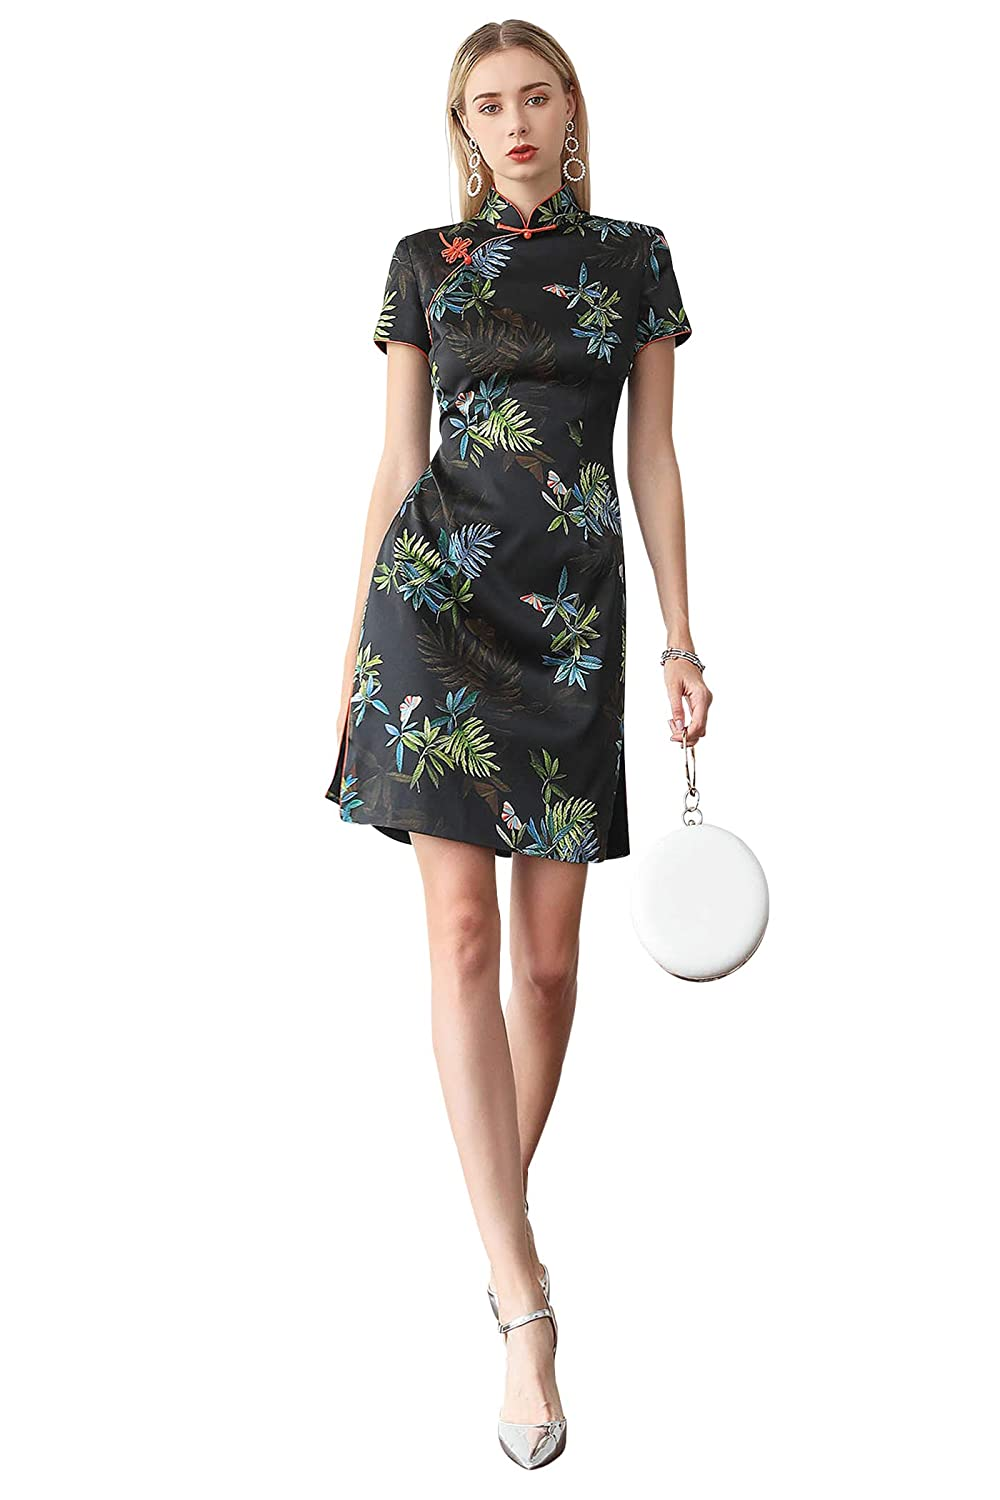 VOA Asian Silk Chinese Traditional Mini Dresses Short Sleeve Floral Qipao  Dress at Amazon Women's Clothing store: